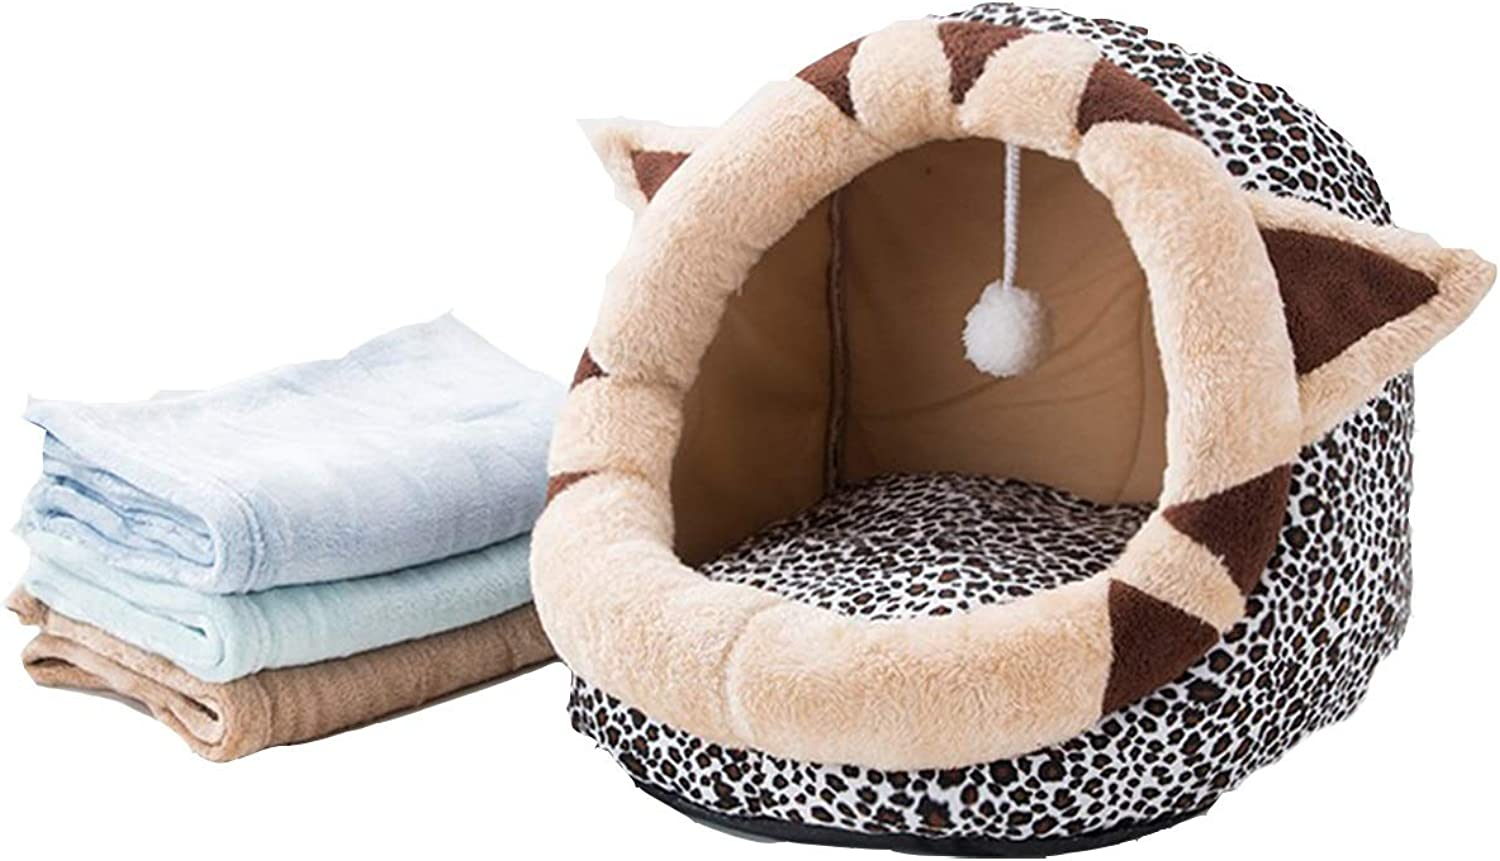 Cat Litter, Four Seasons Universal Closed Summer Cat House, Kennel, Cat Mat Washable, Summer Pet Supplies, Threedimensional Pet Nest, Sleep And Play One Fun Pet Nest, With Towels 2 Optional